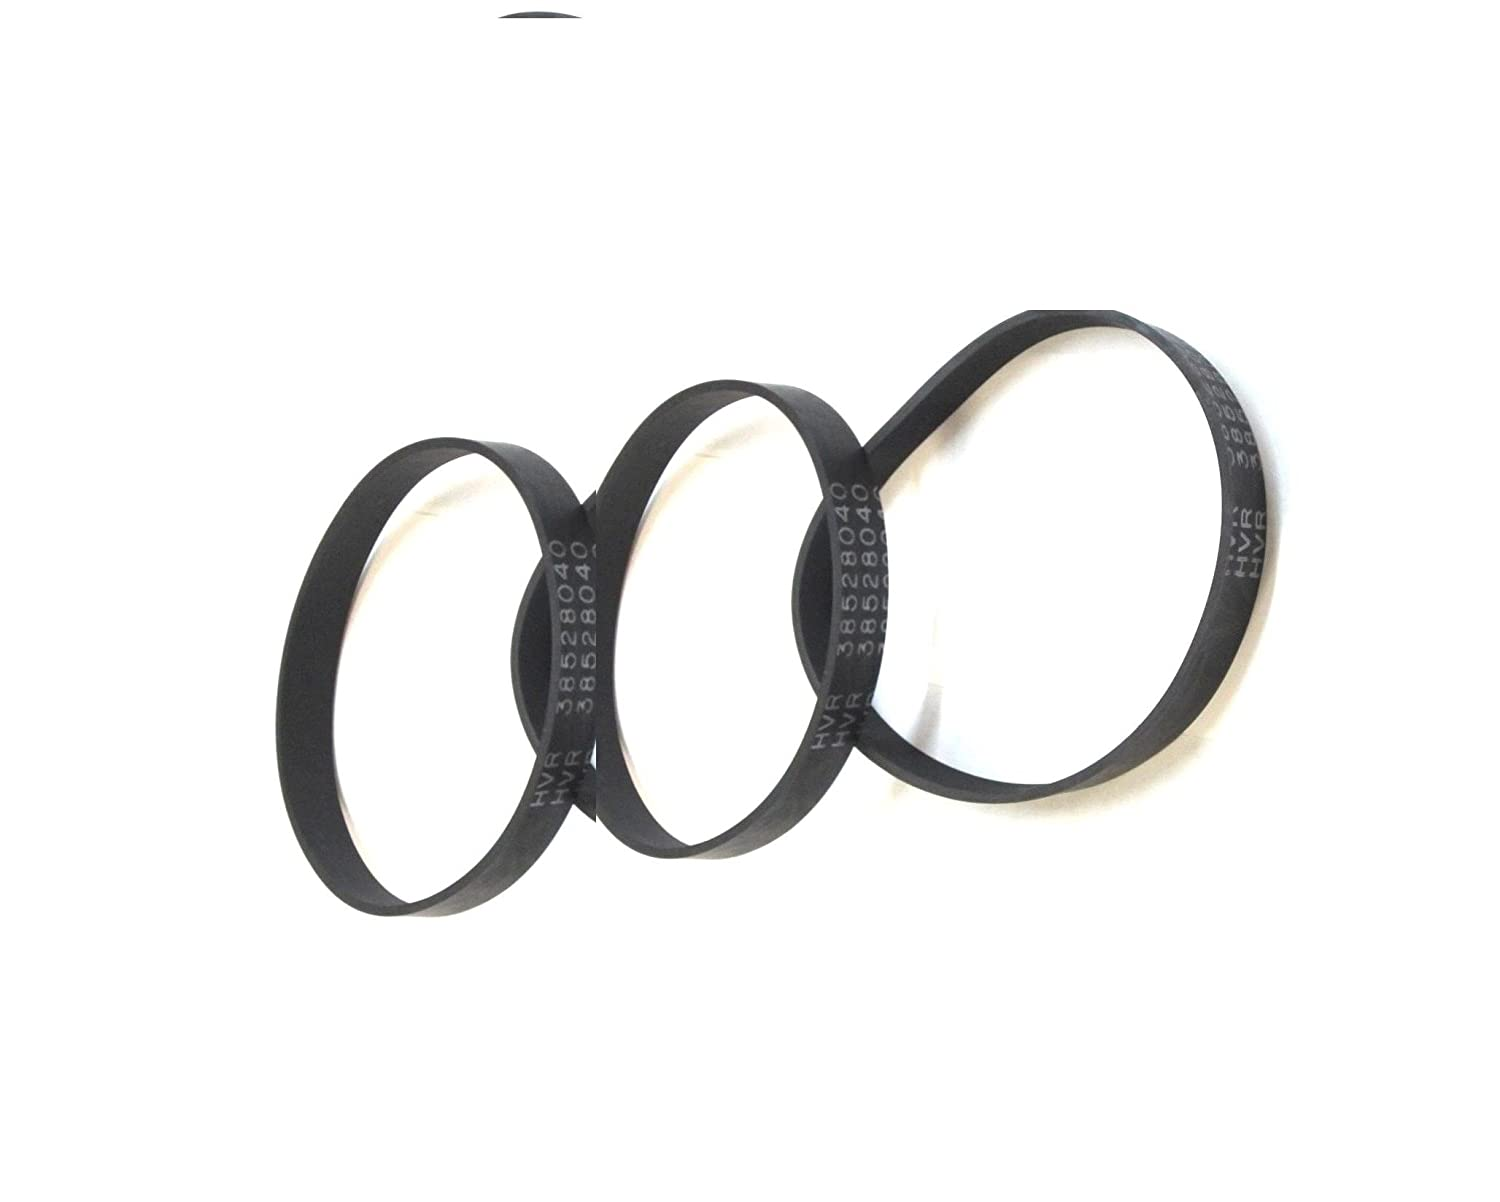 Hoover 38528-027 Elite Belt (Now 38528-040) 3 pack